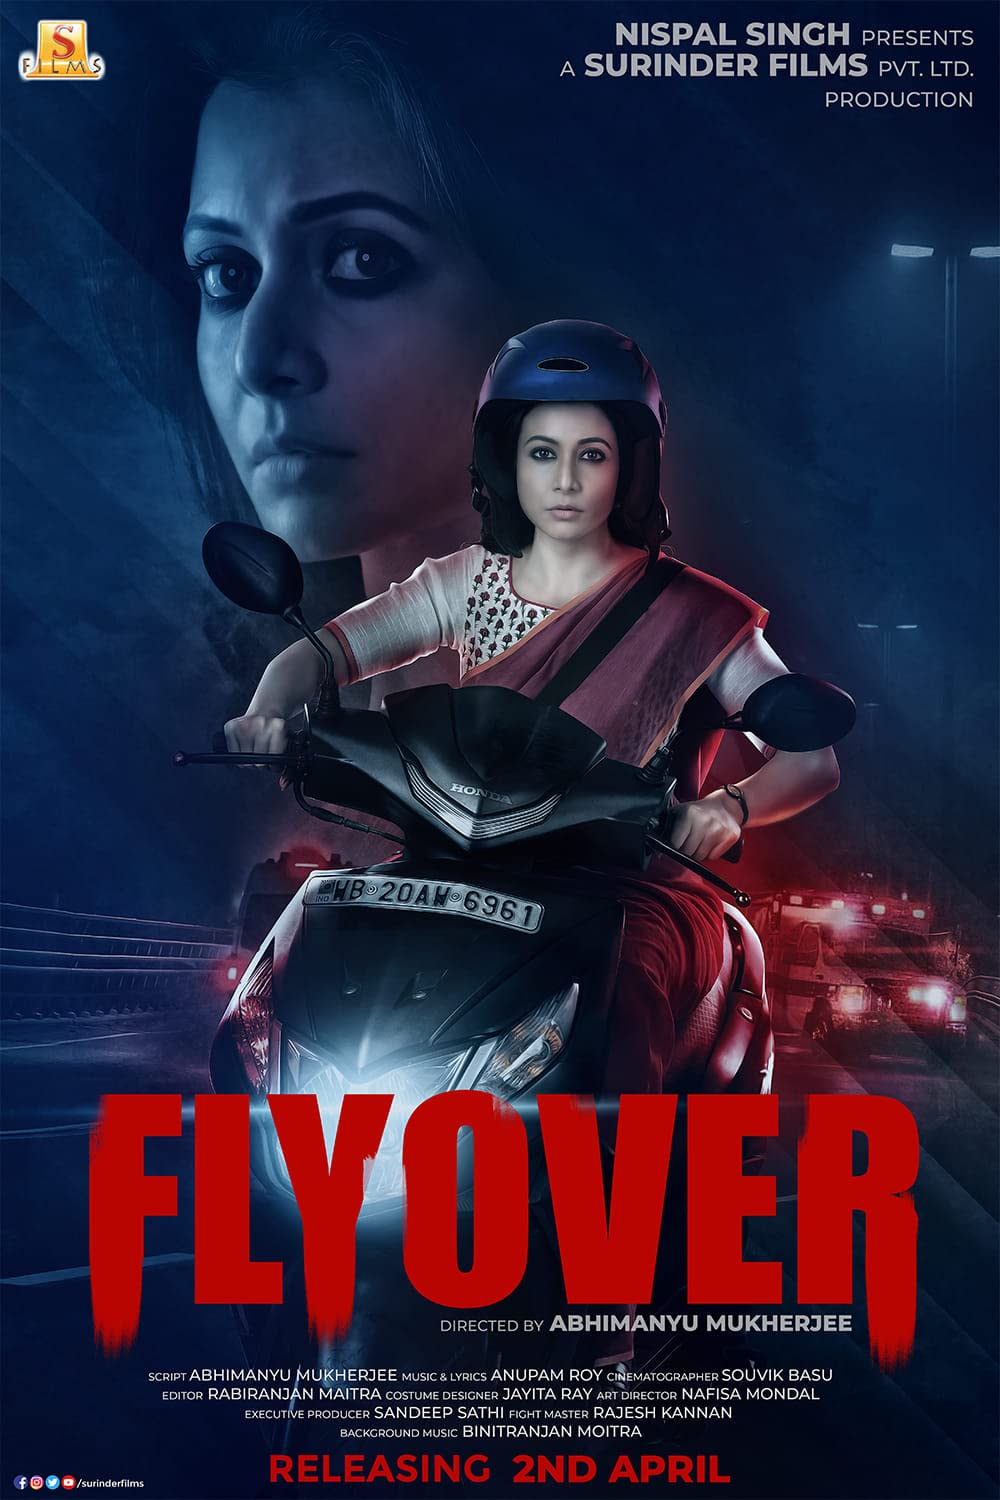 Flyover (2021) Bengali Full Movie 720p HDRip